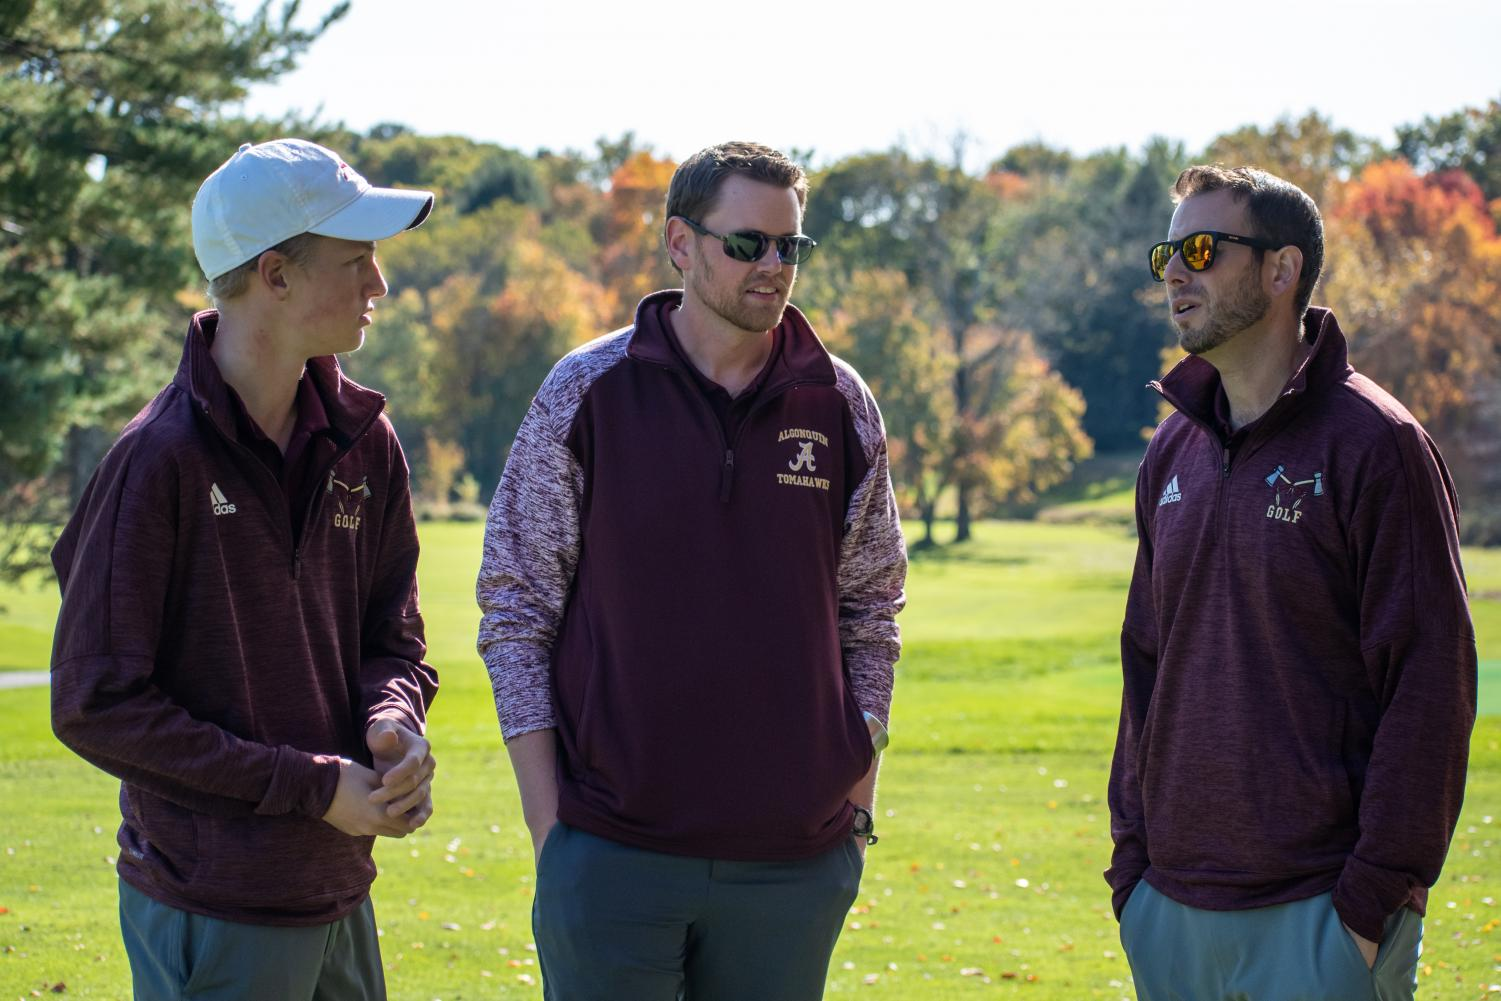 New coaches Mike Groccia (right) and Brian Calnan (middle) discuss the upcoming match against Leominster with teeam captian senior Kevin Henderson (left).